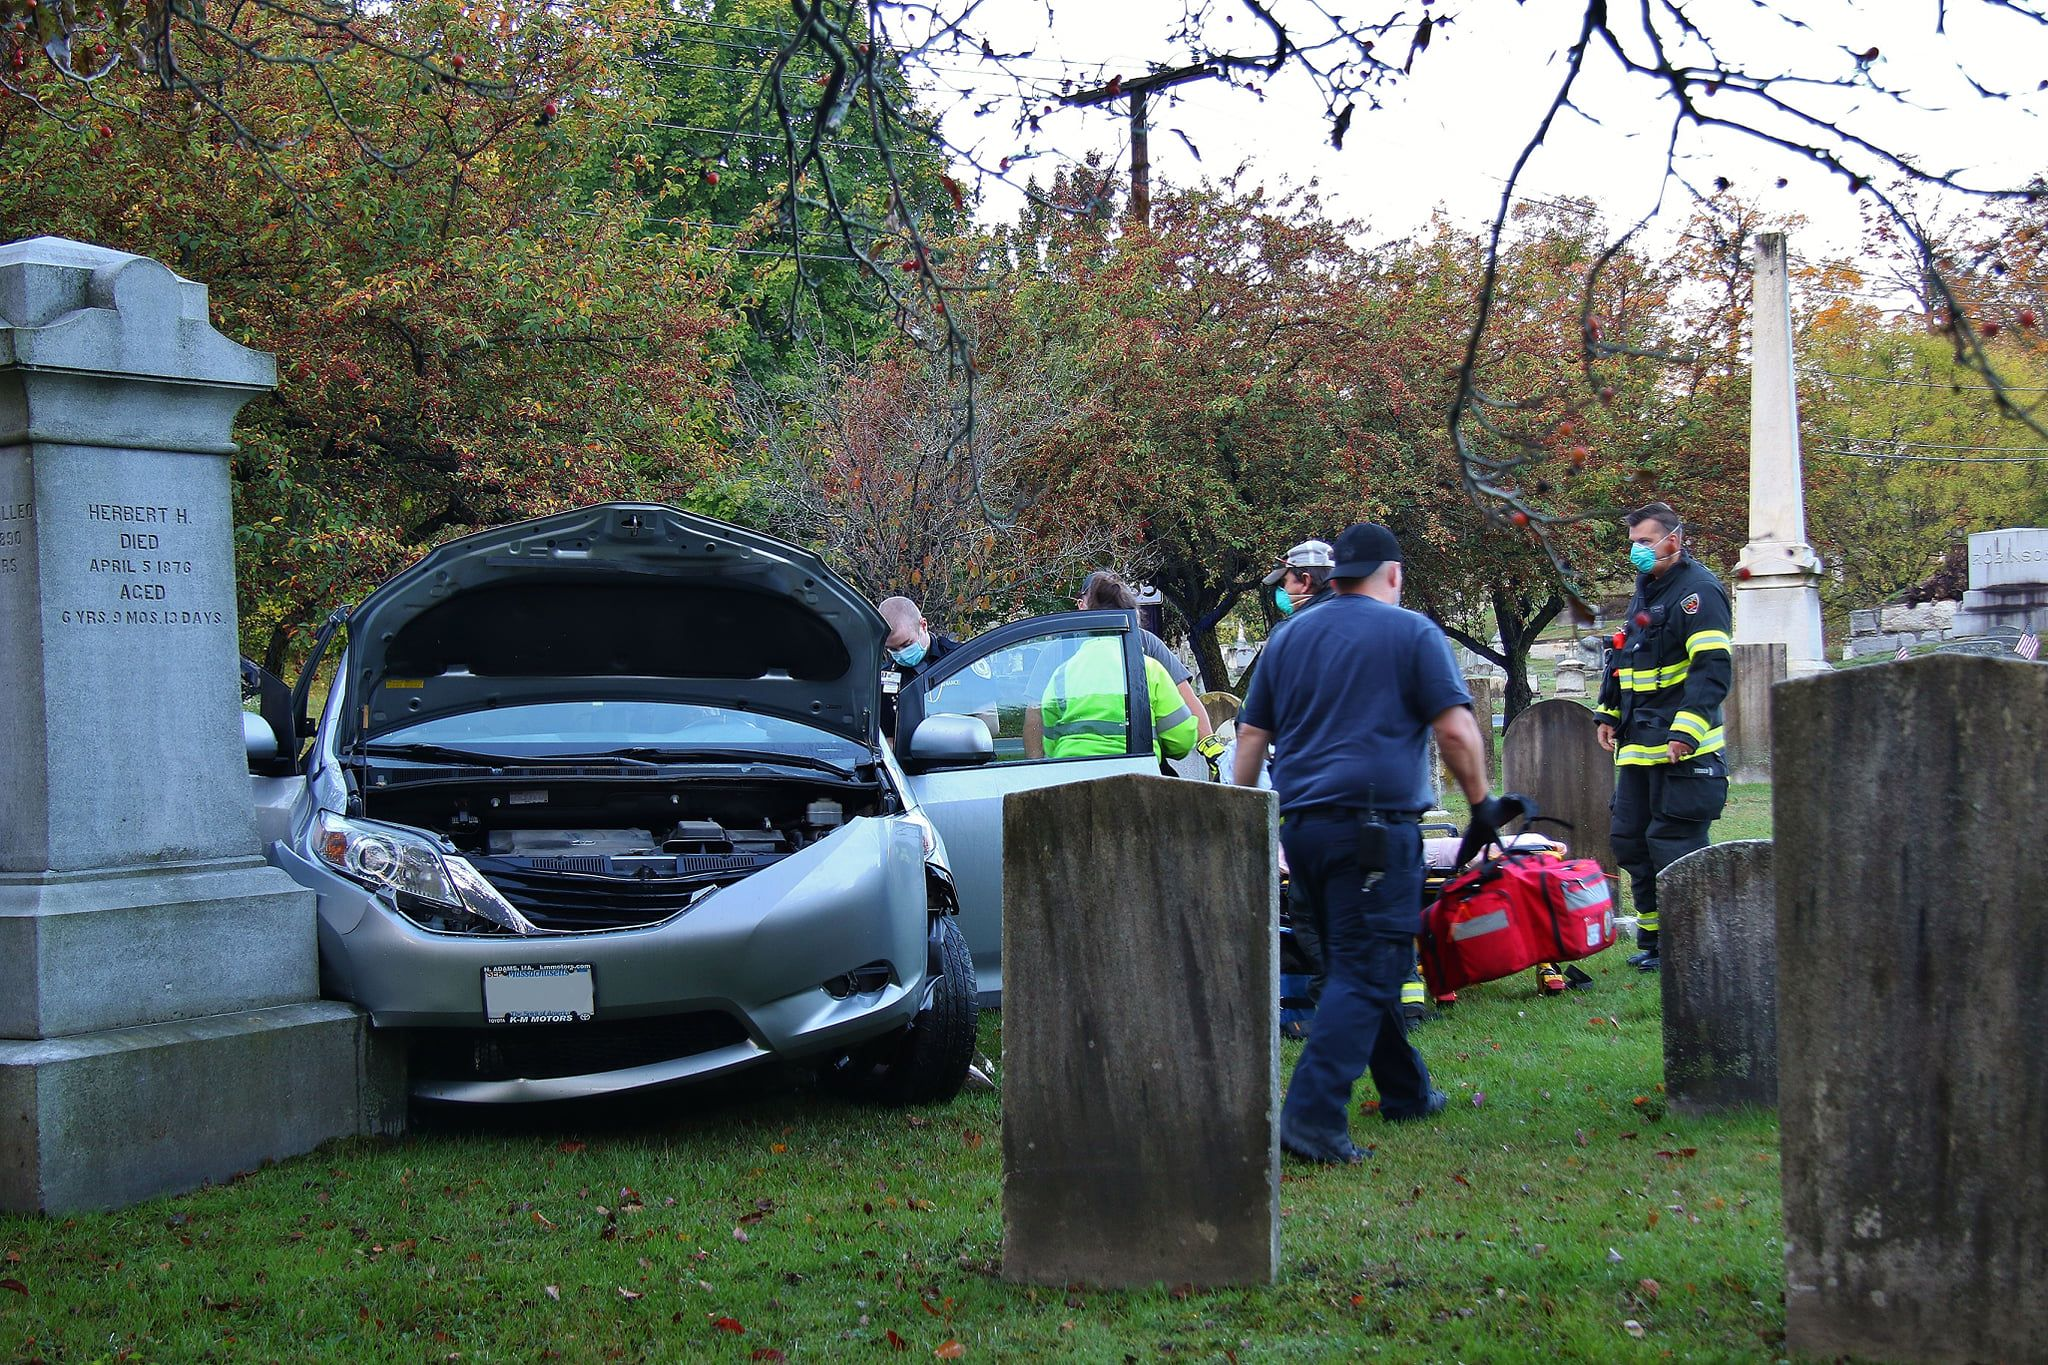 North Adams cemetery motor vehicle accident